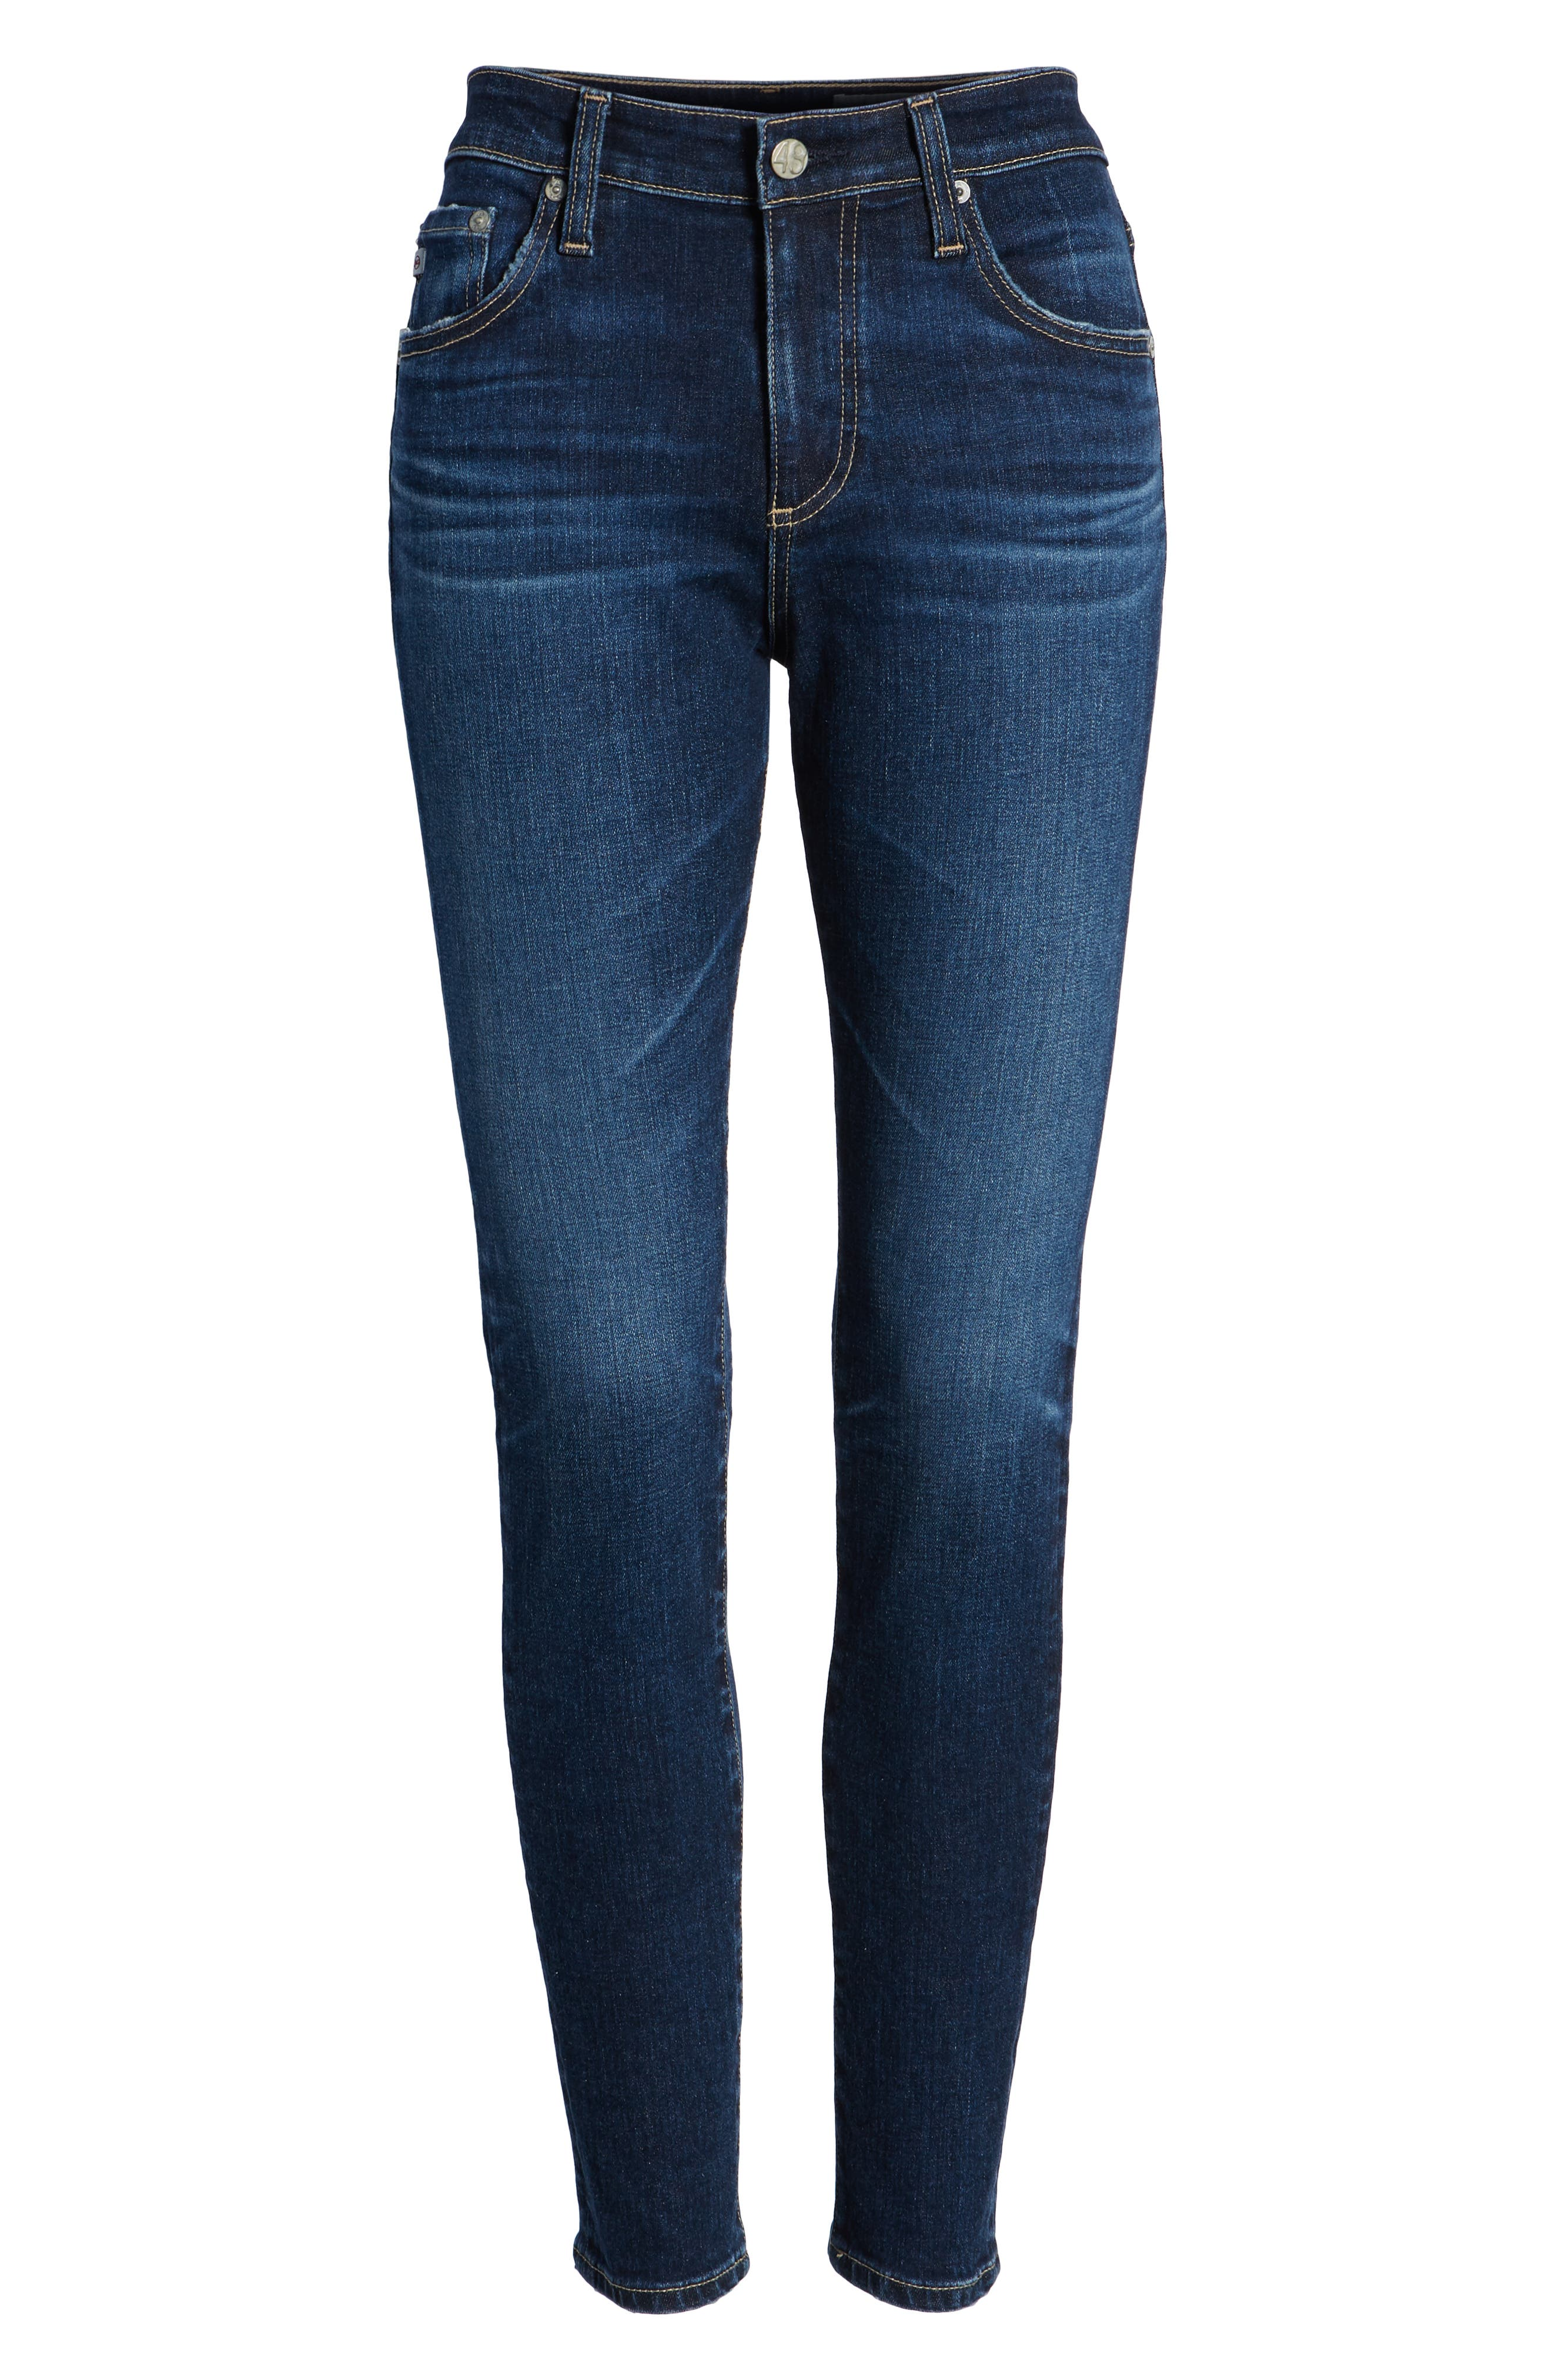 The Farrah Ankle Skinny Jeans, Alternate, color, 07 YEARS ASTRO AZURE